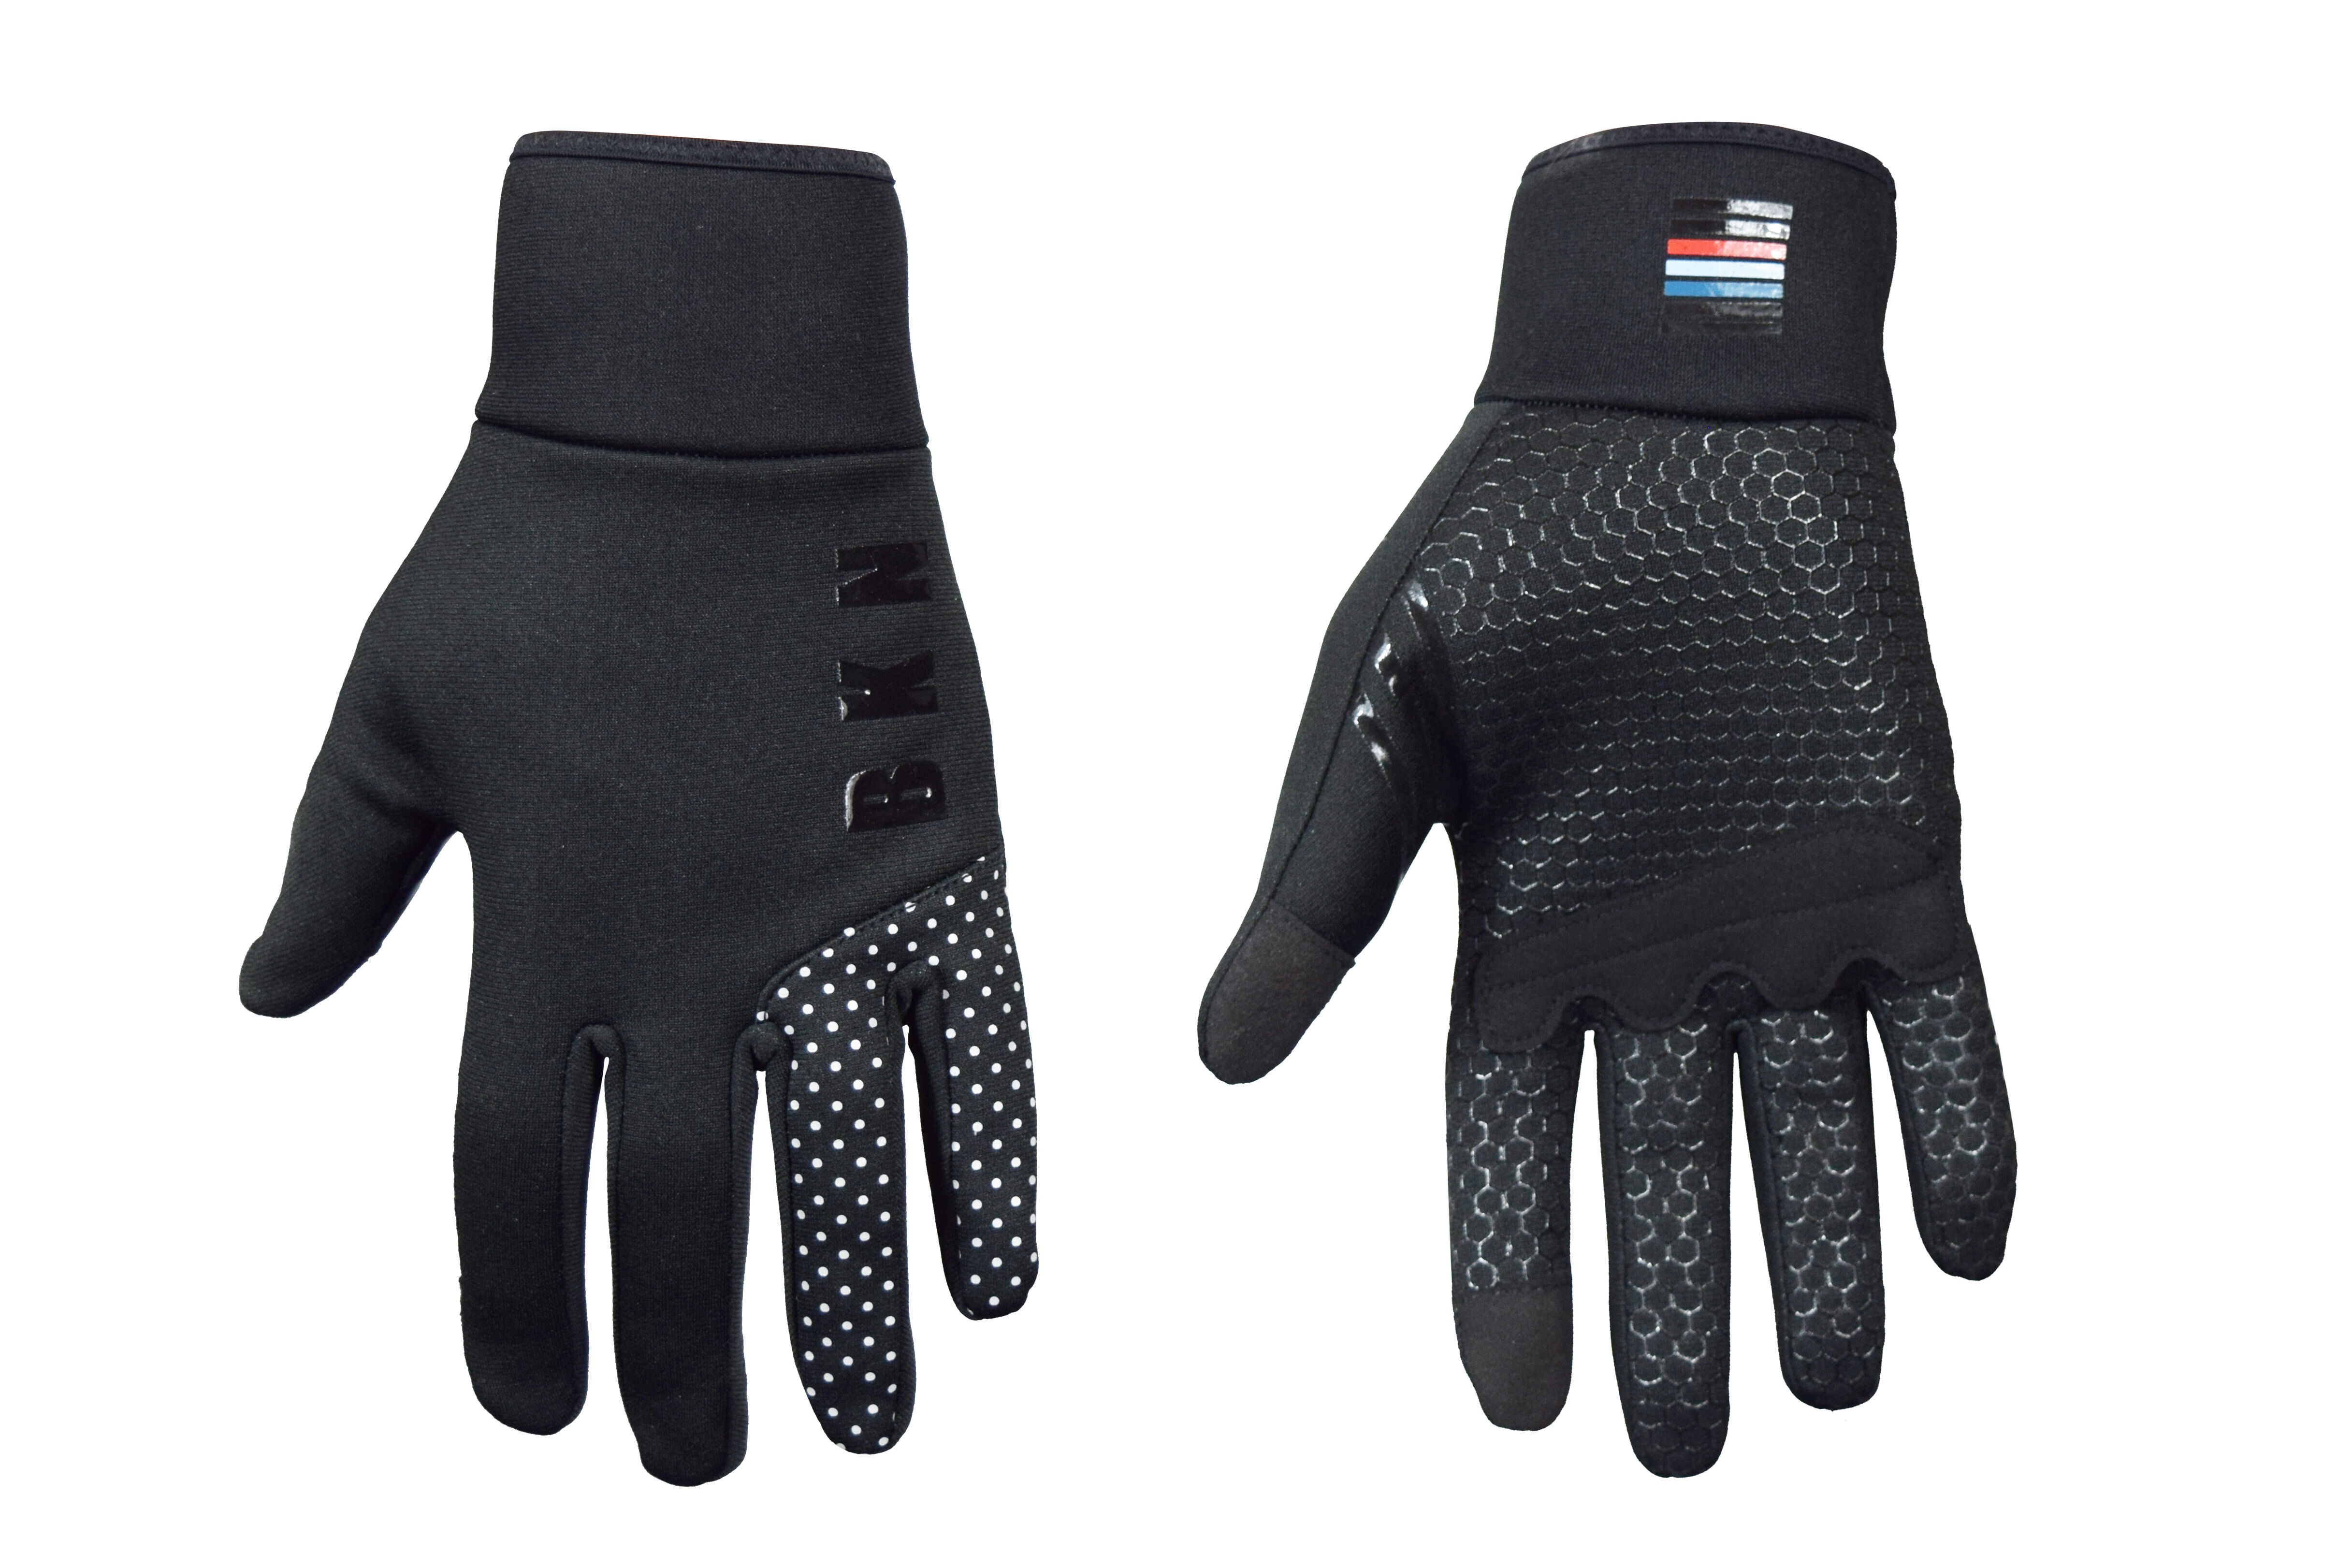 Winter Glove Inner and Outer